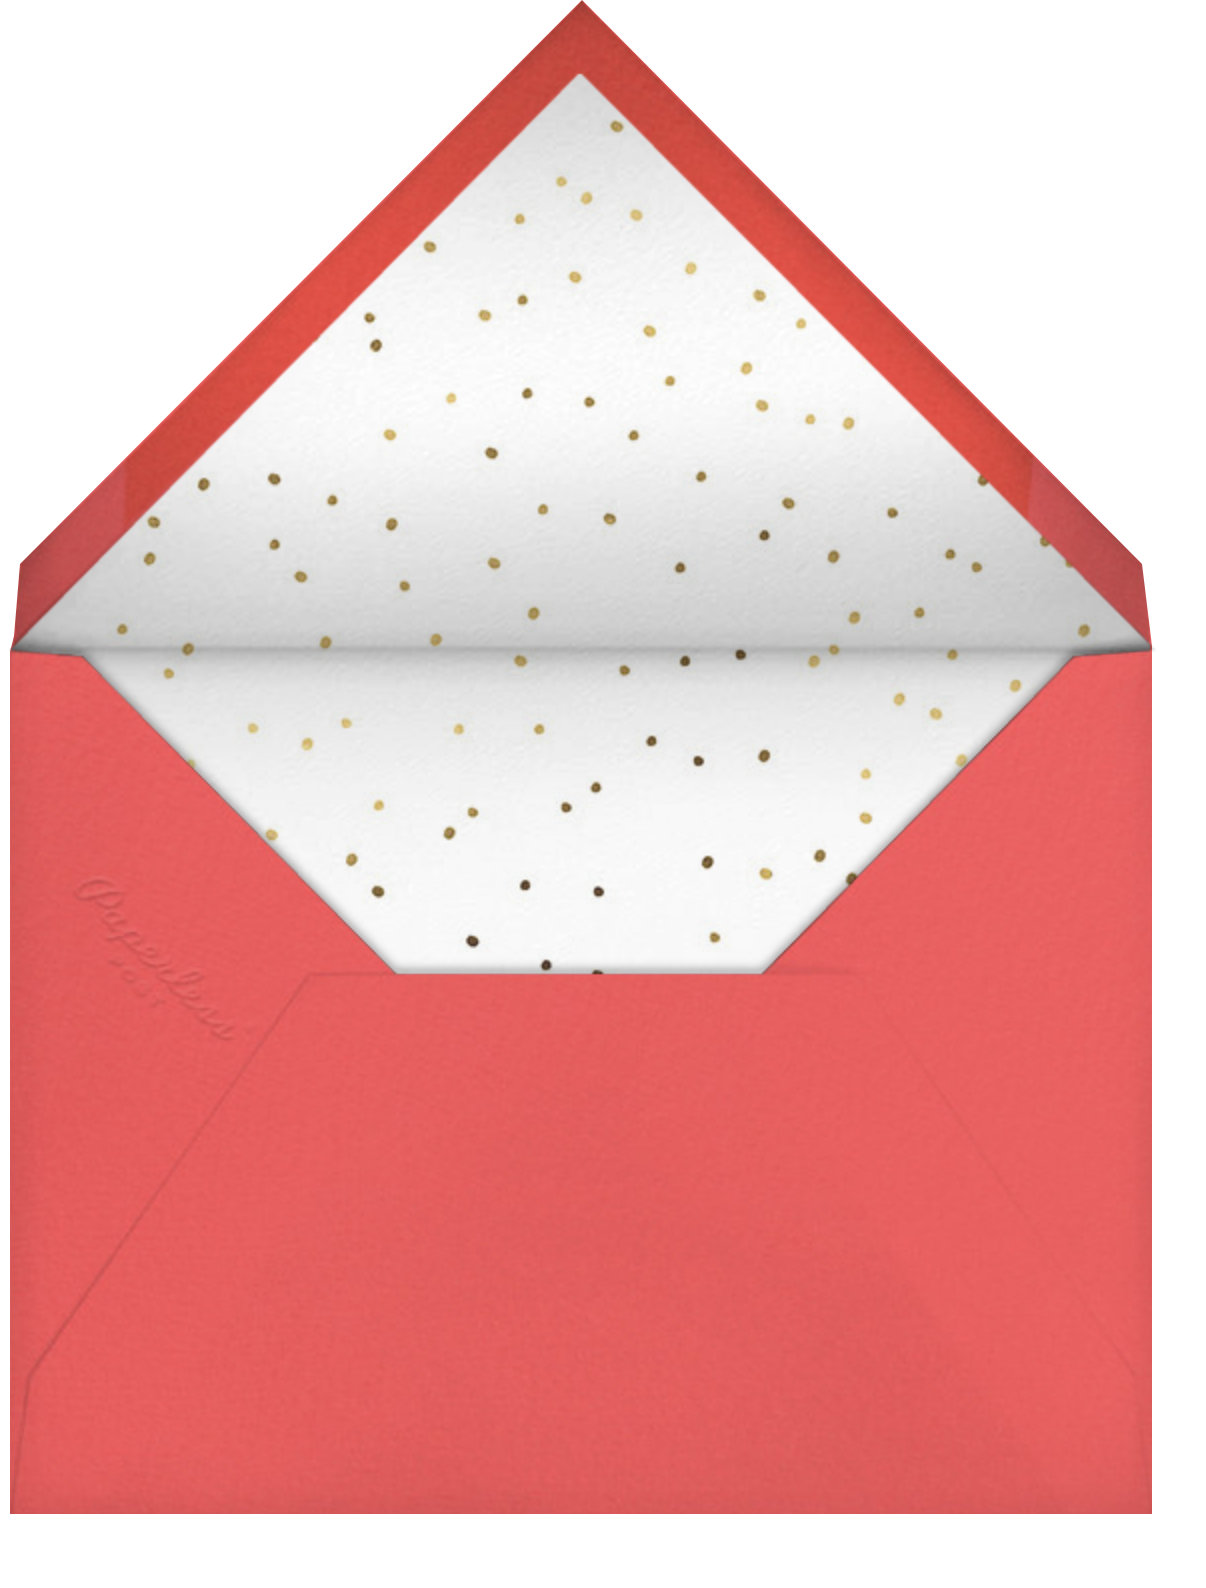 You're the Best - Hello!Lucky - Graduation thank you cards - envelope back